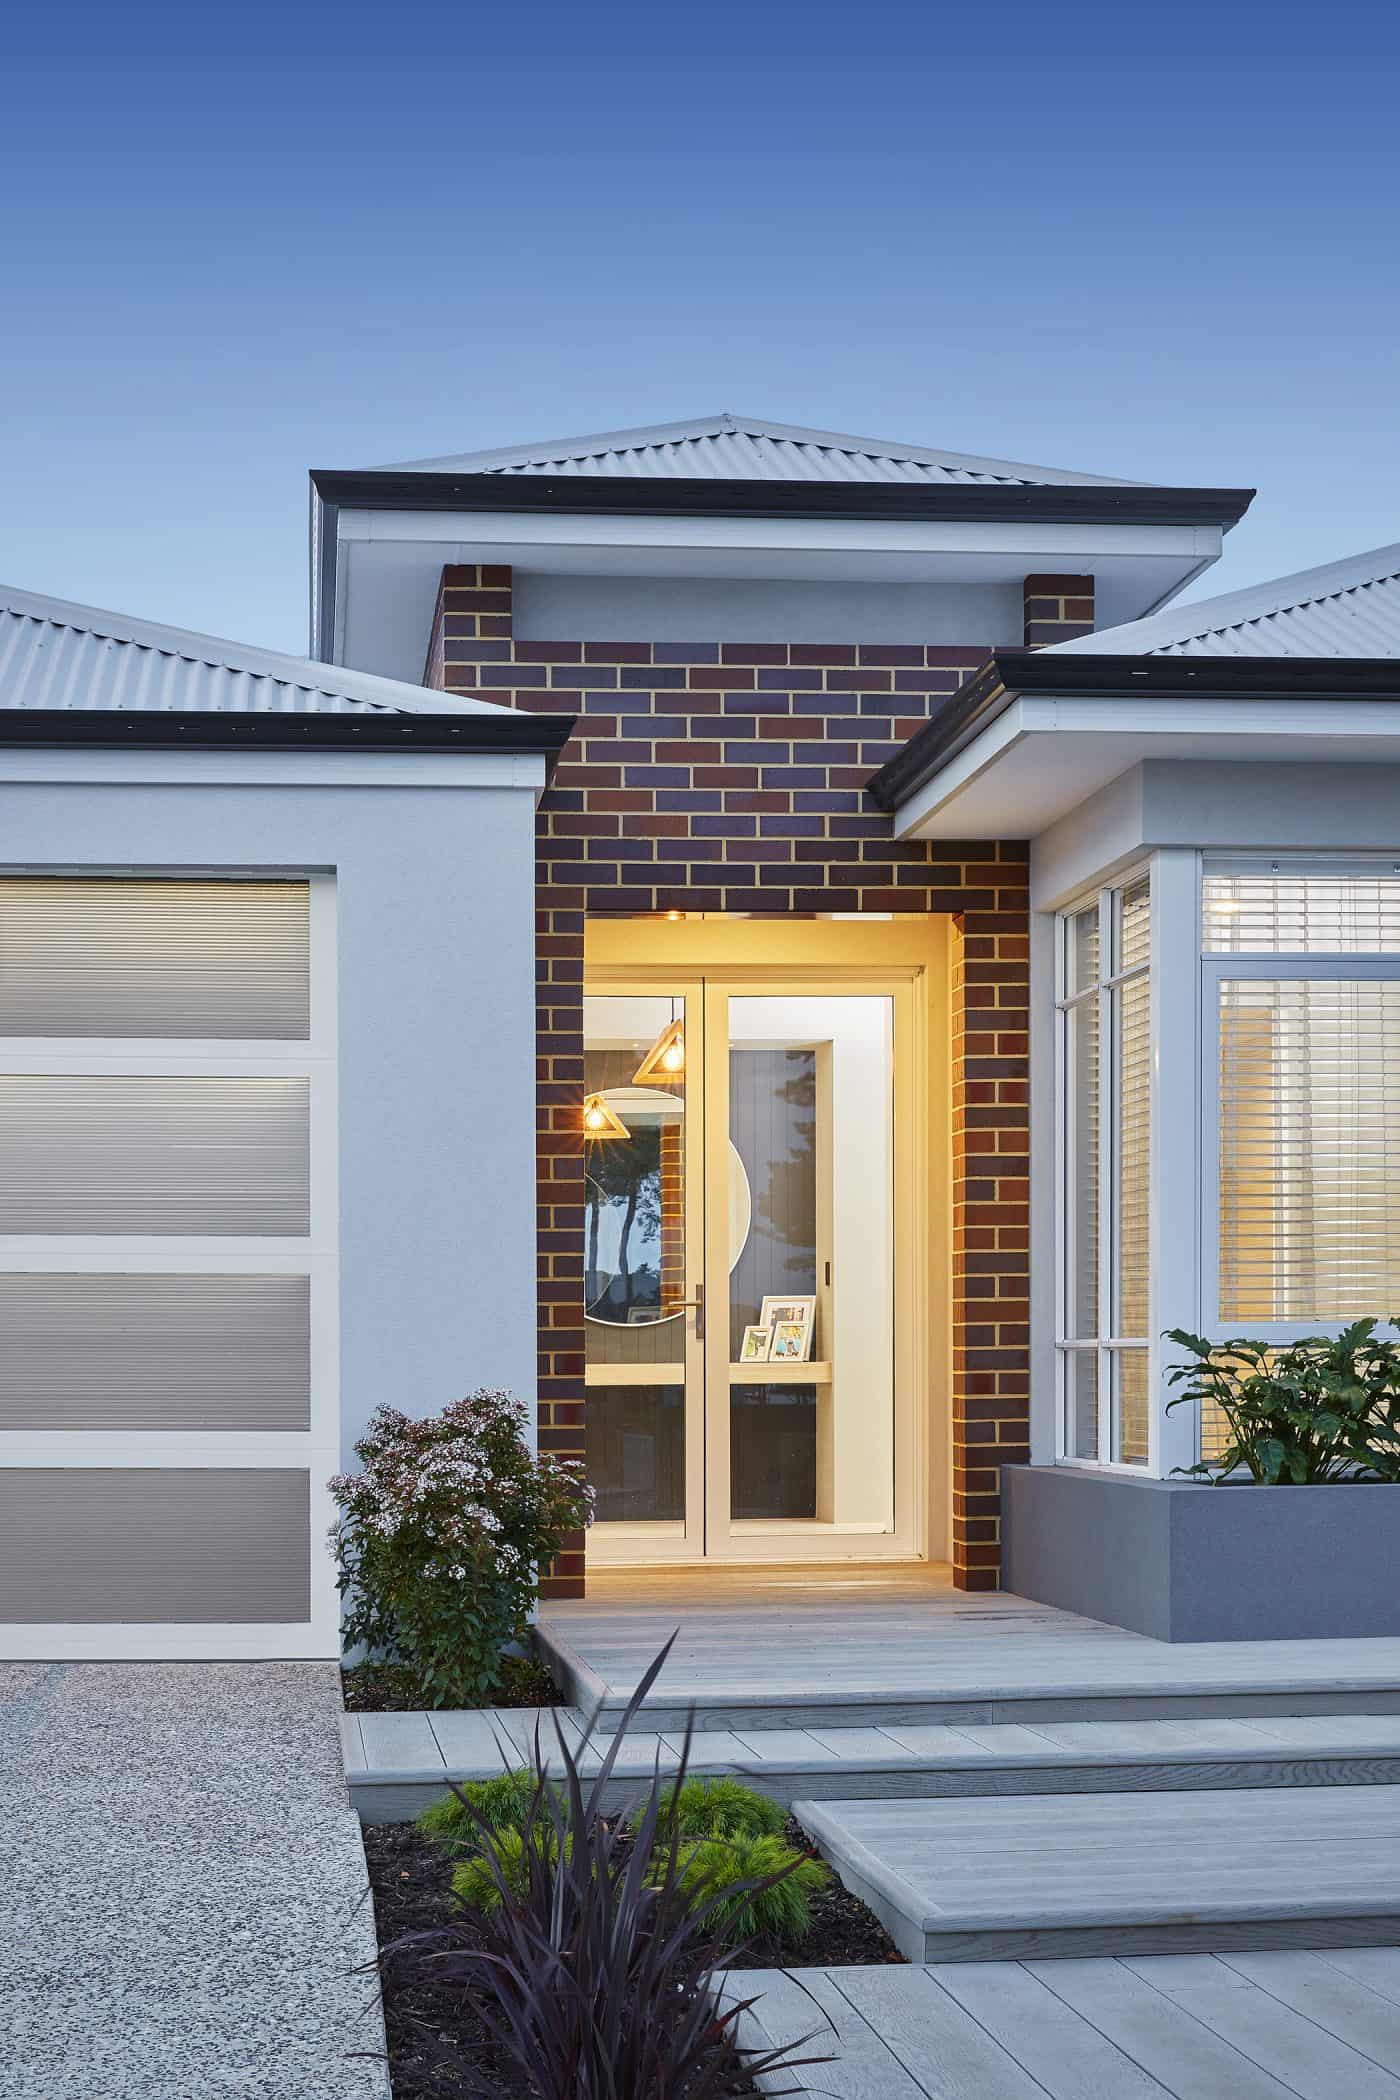 House Plans Under 150k Awesome Ellenbrook Display Home Perth the Hesperia